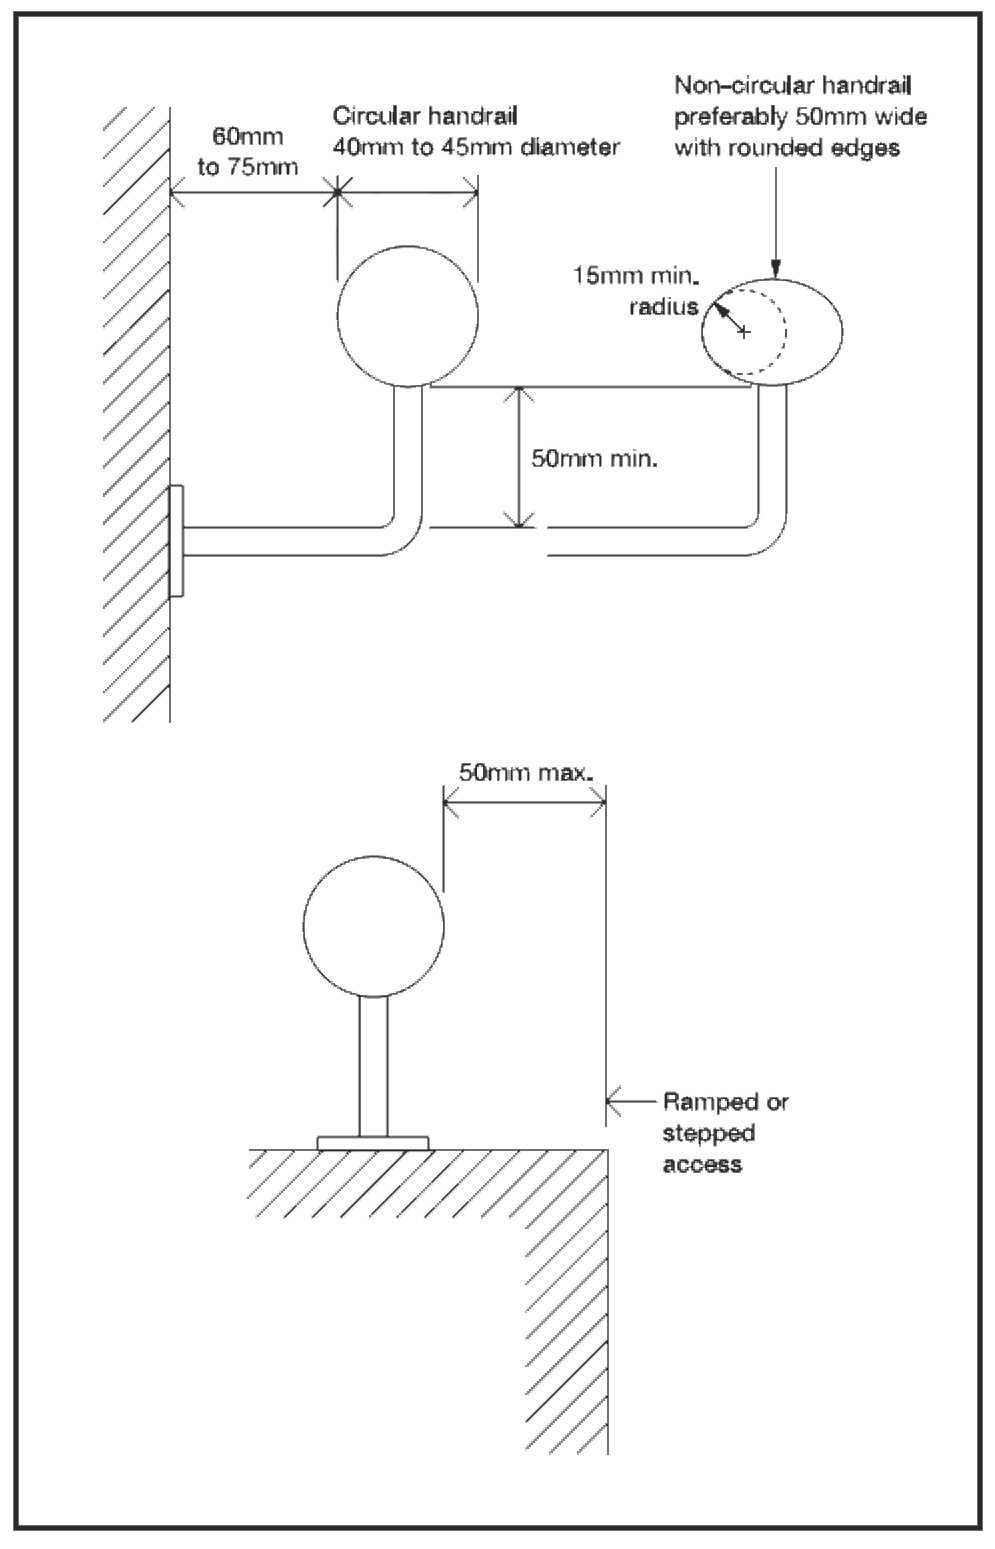 Diagram Of Handrail Wiring Schematic 2019 1969 Camaro Colorview Disabled Archives Clive Elsdon Building Design